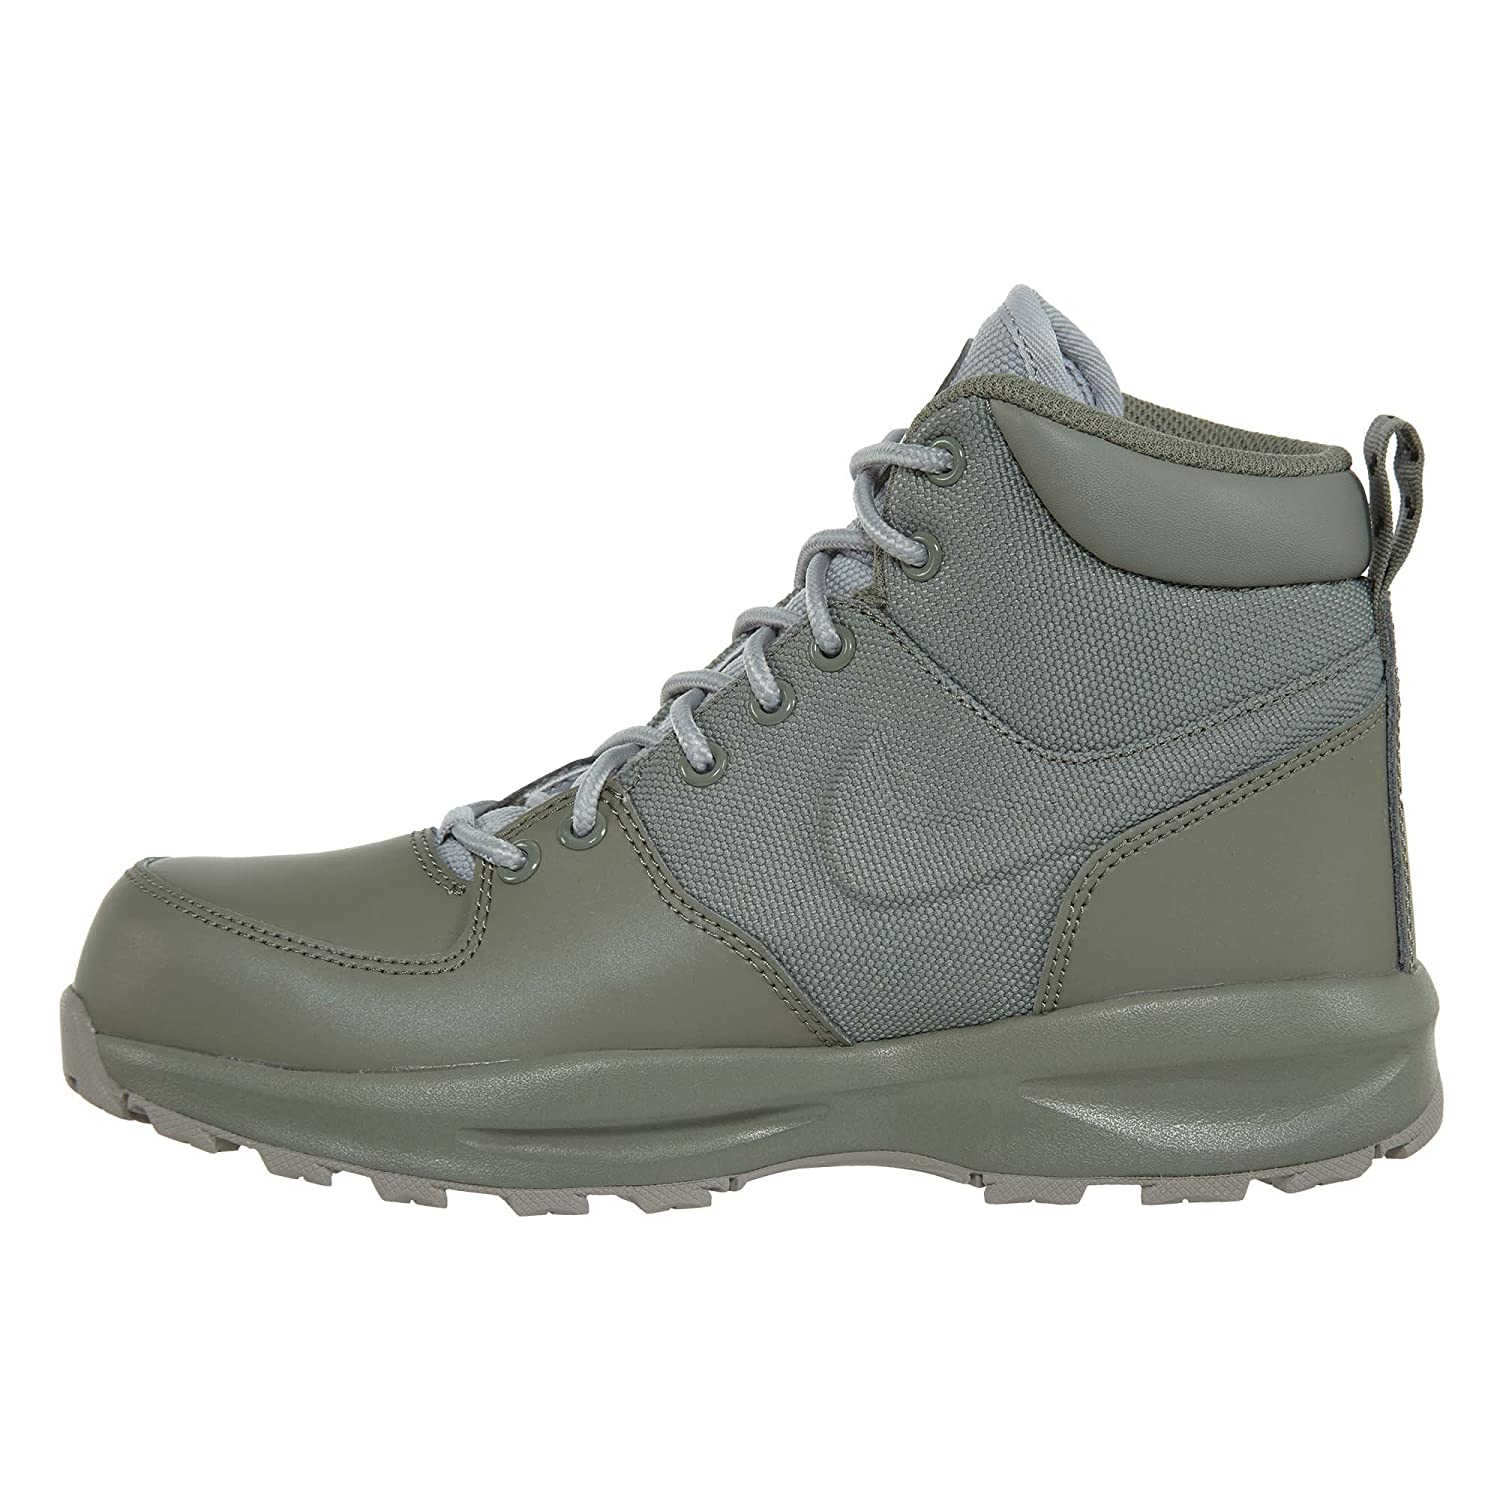 GS Dark Stucco//Wolf Grey-Cobblestone 4.5Y Boot Nike Boys Manoa 17